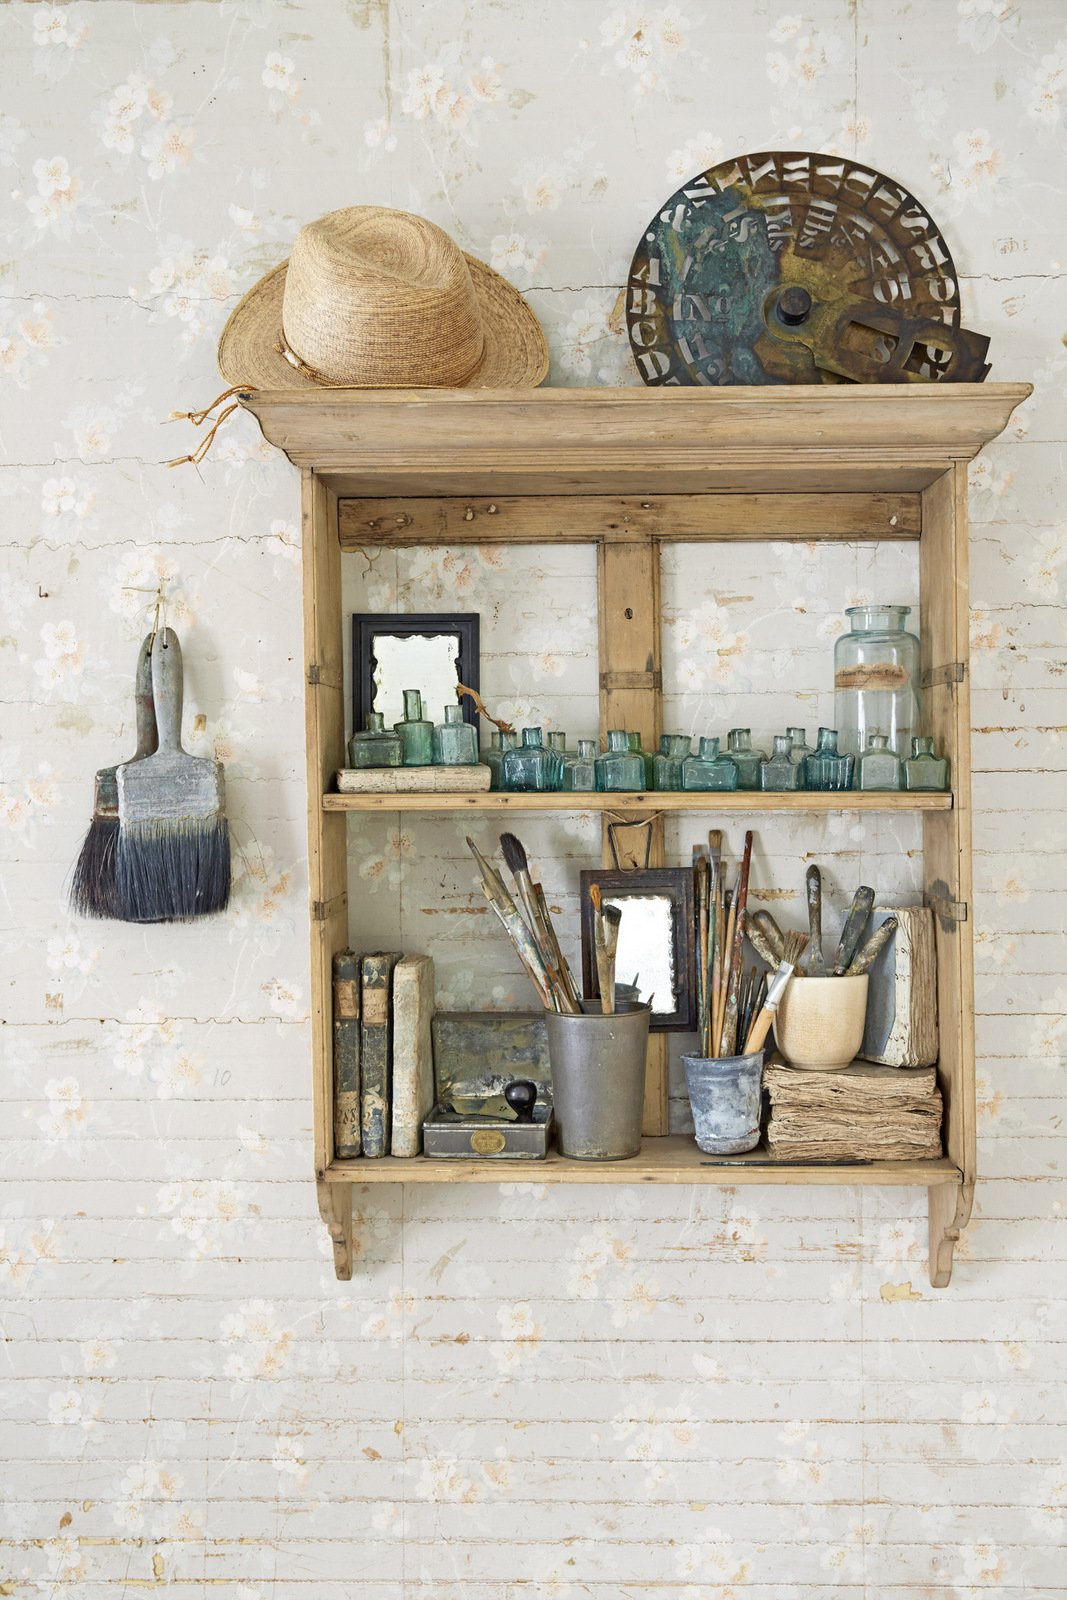 #14 Give Creativity Space in every room. -